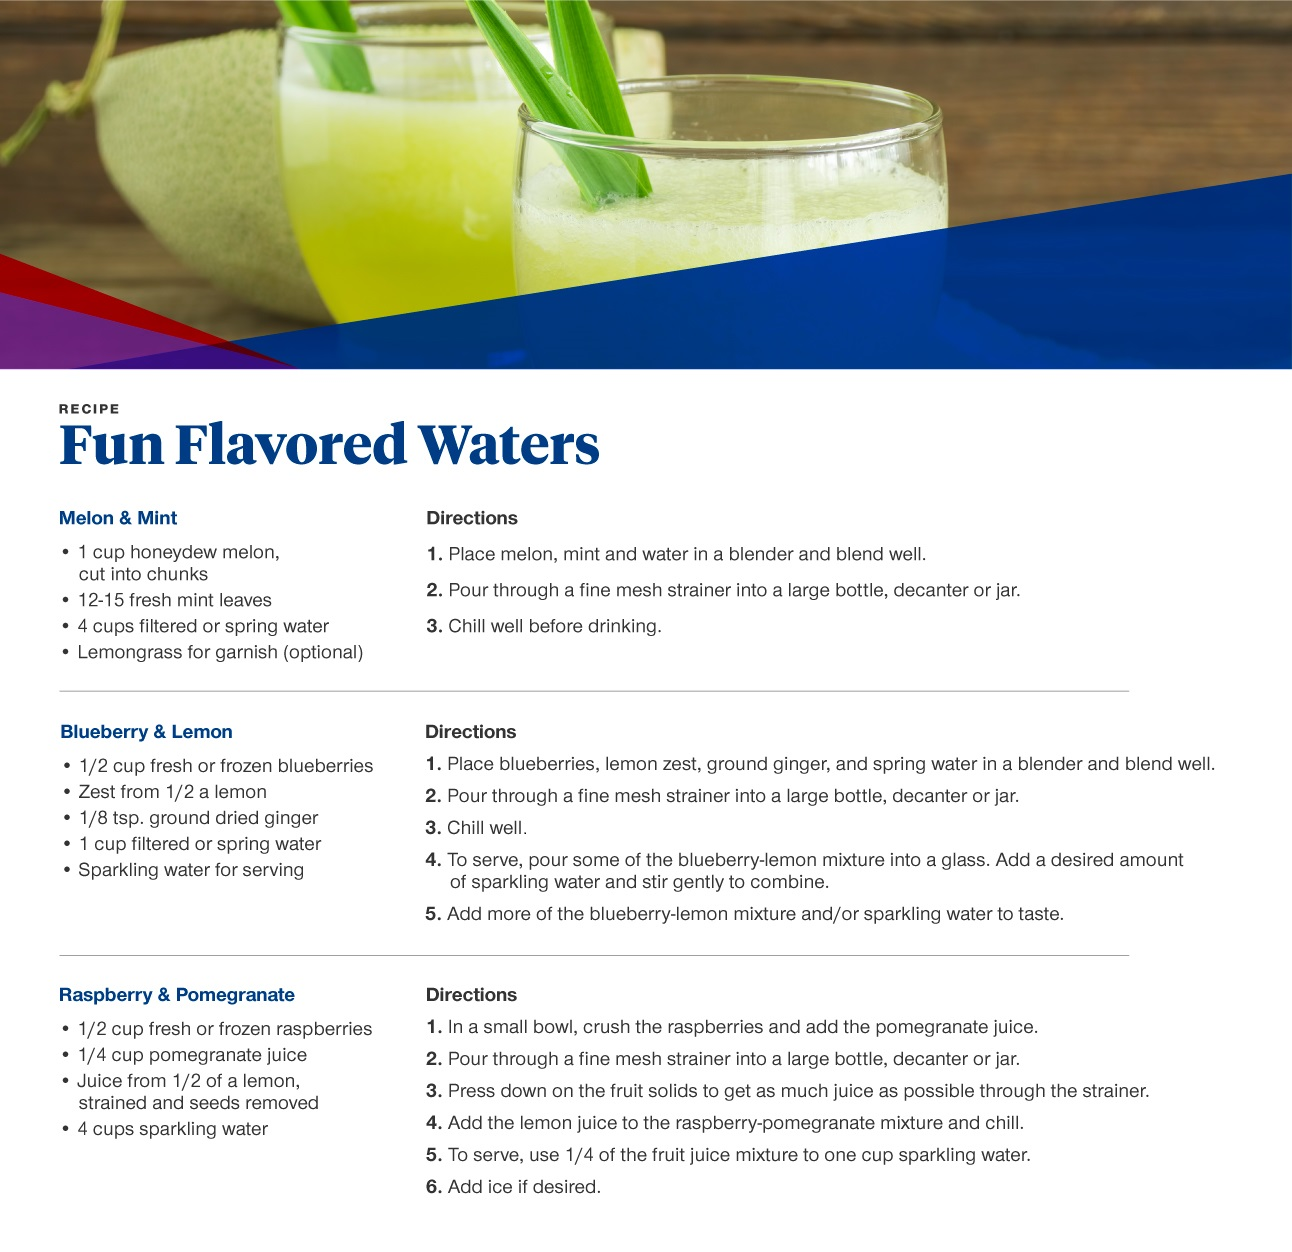 fun, flavored waters recipe card with ingredients and instructions also listed below.